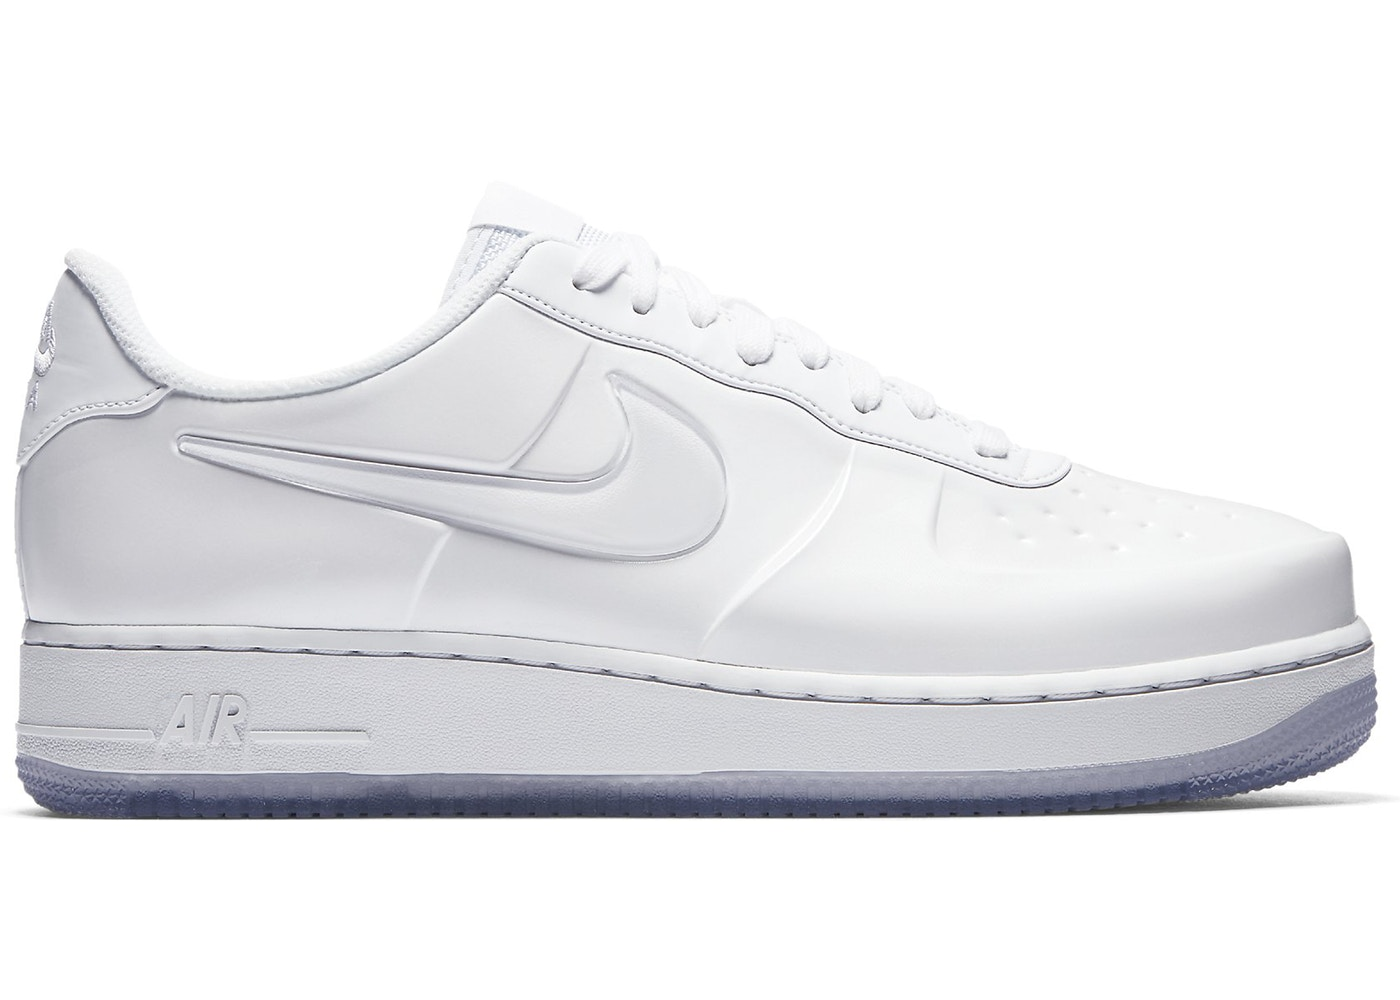 online retailer 0d9c7 92832 Air Force 1 Foamposite Pro Cup Triple White - AJ3664-100